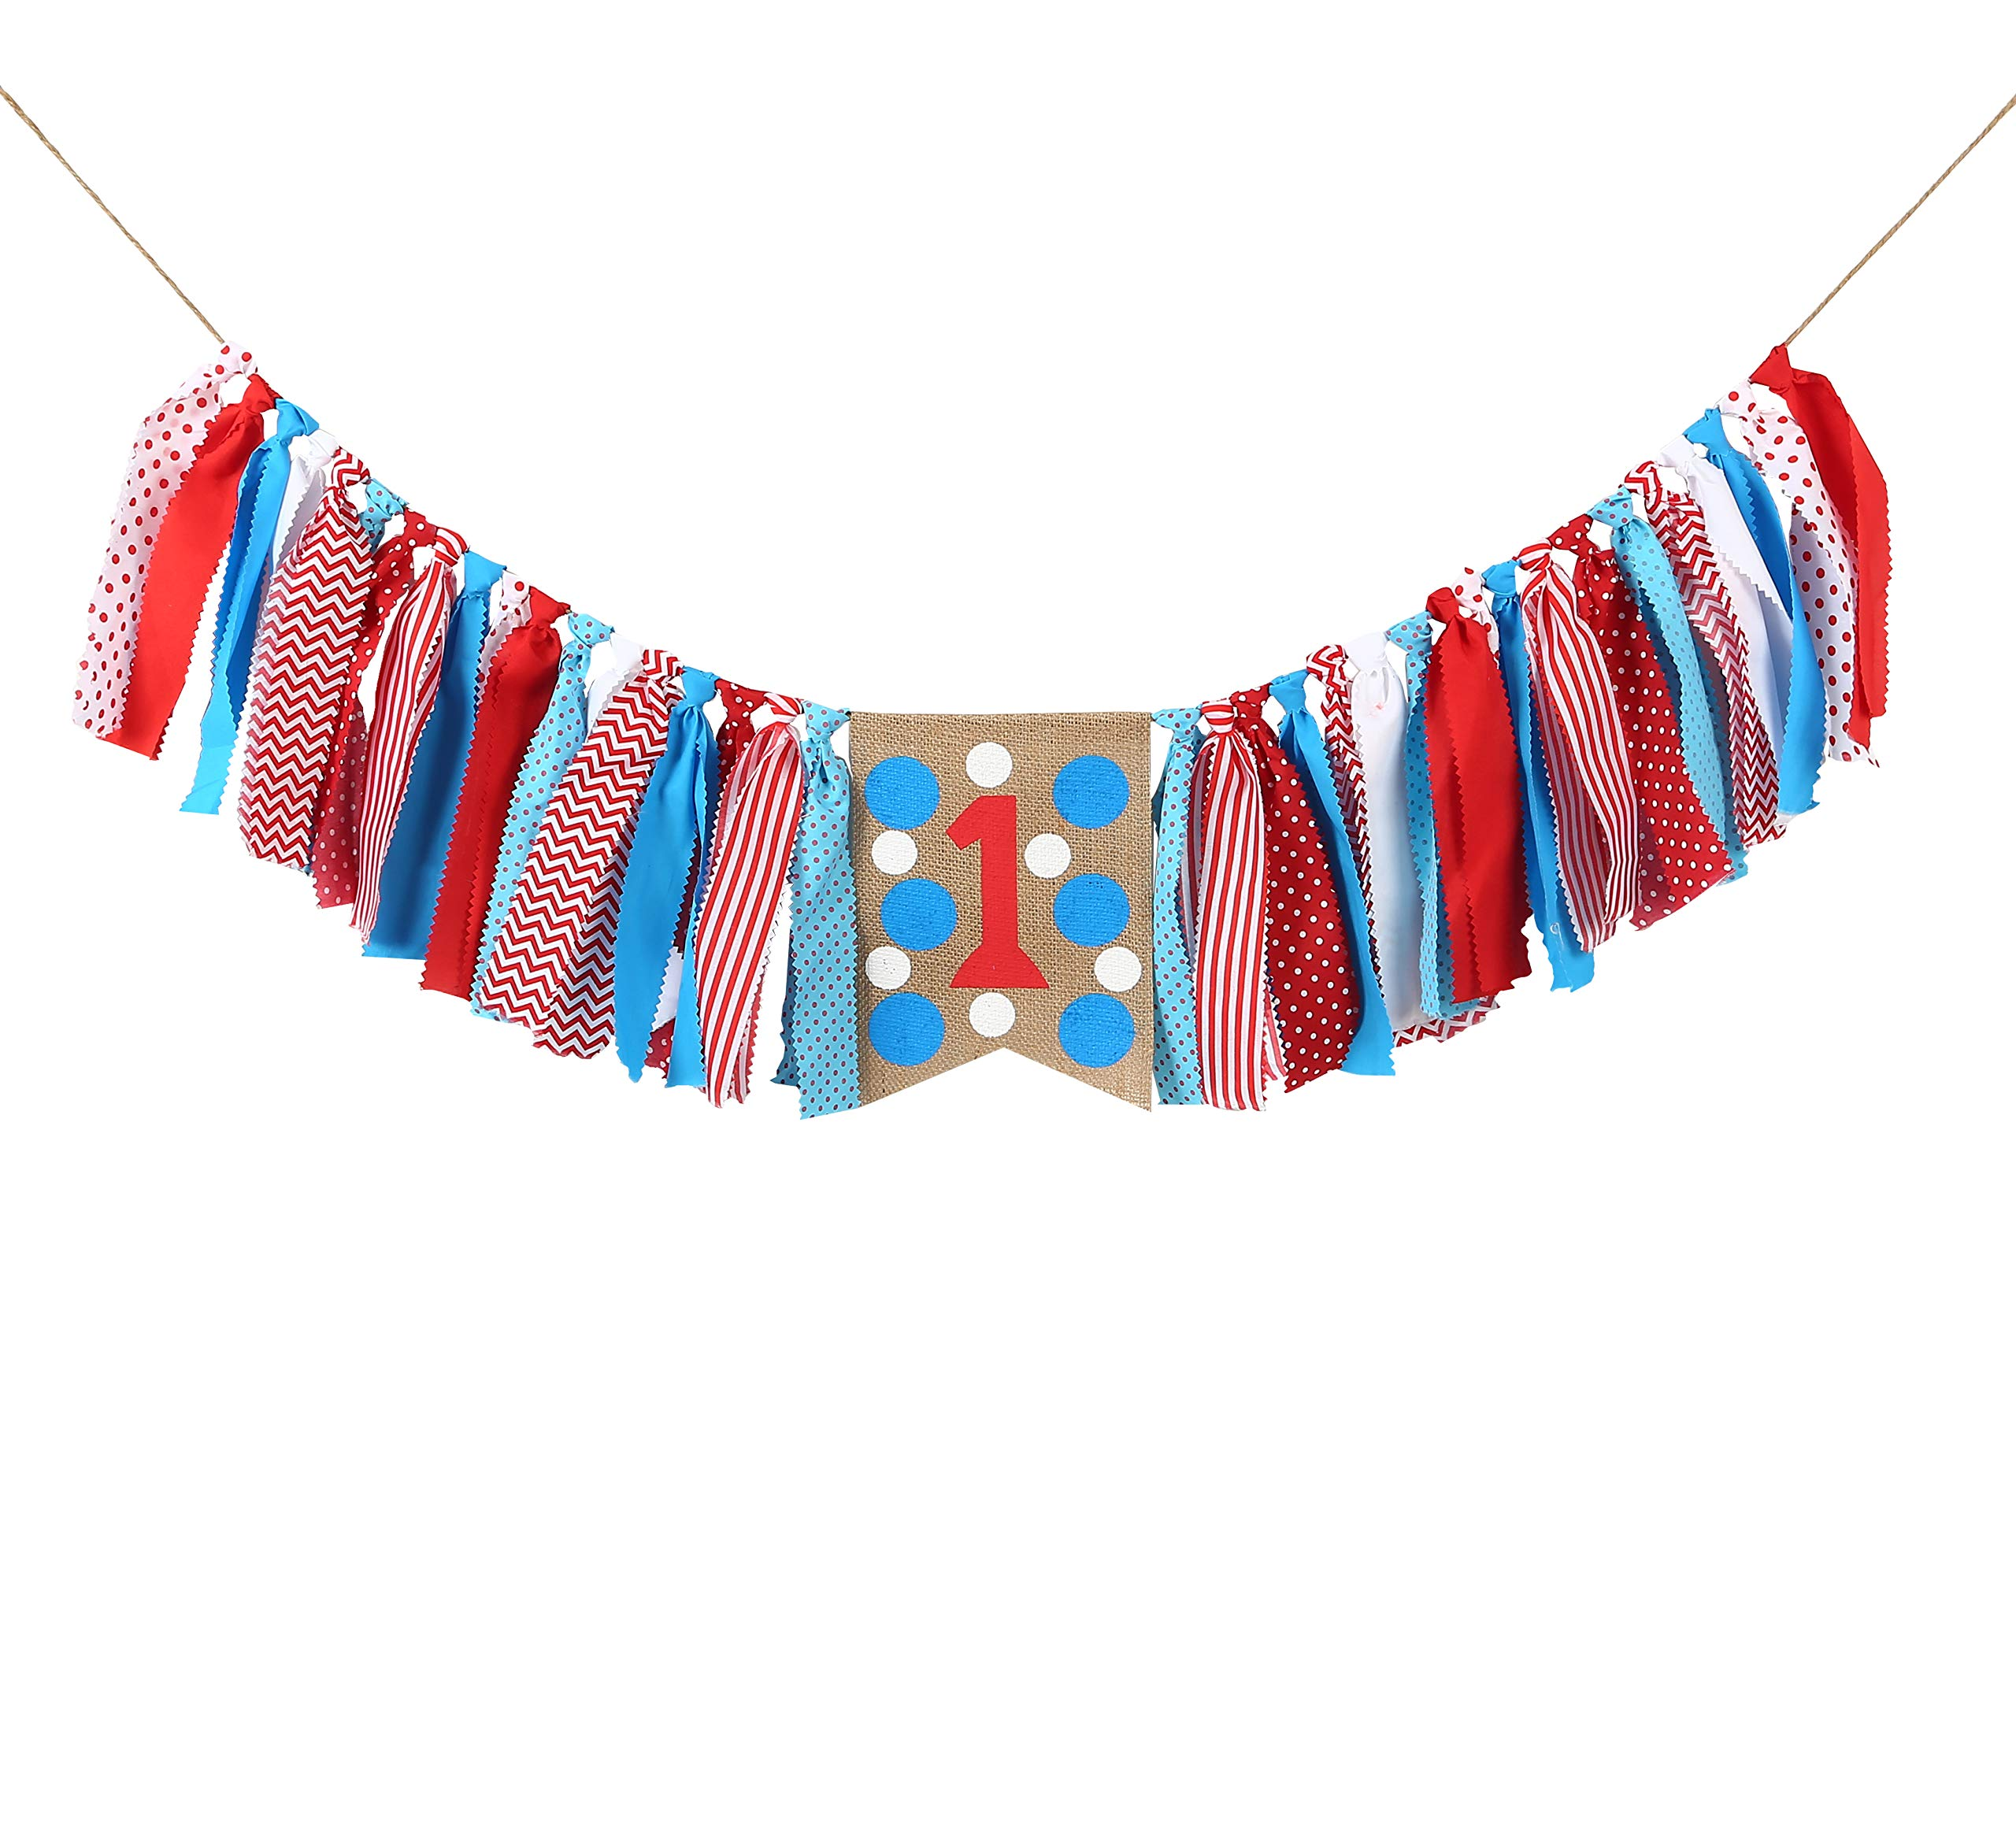 WAOUH 1star Birthday for Dr Seuss Decorations - Dr Seuss Party Supplies for Highchair Banner-Photo Prop for Dr Seuss Wall Decor,Birthday Souvenir and Gifts for Kids (1st Birthday Banner)